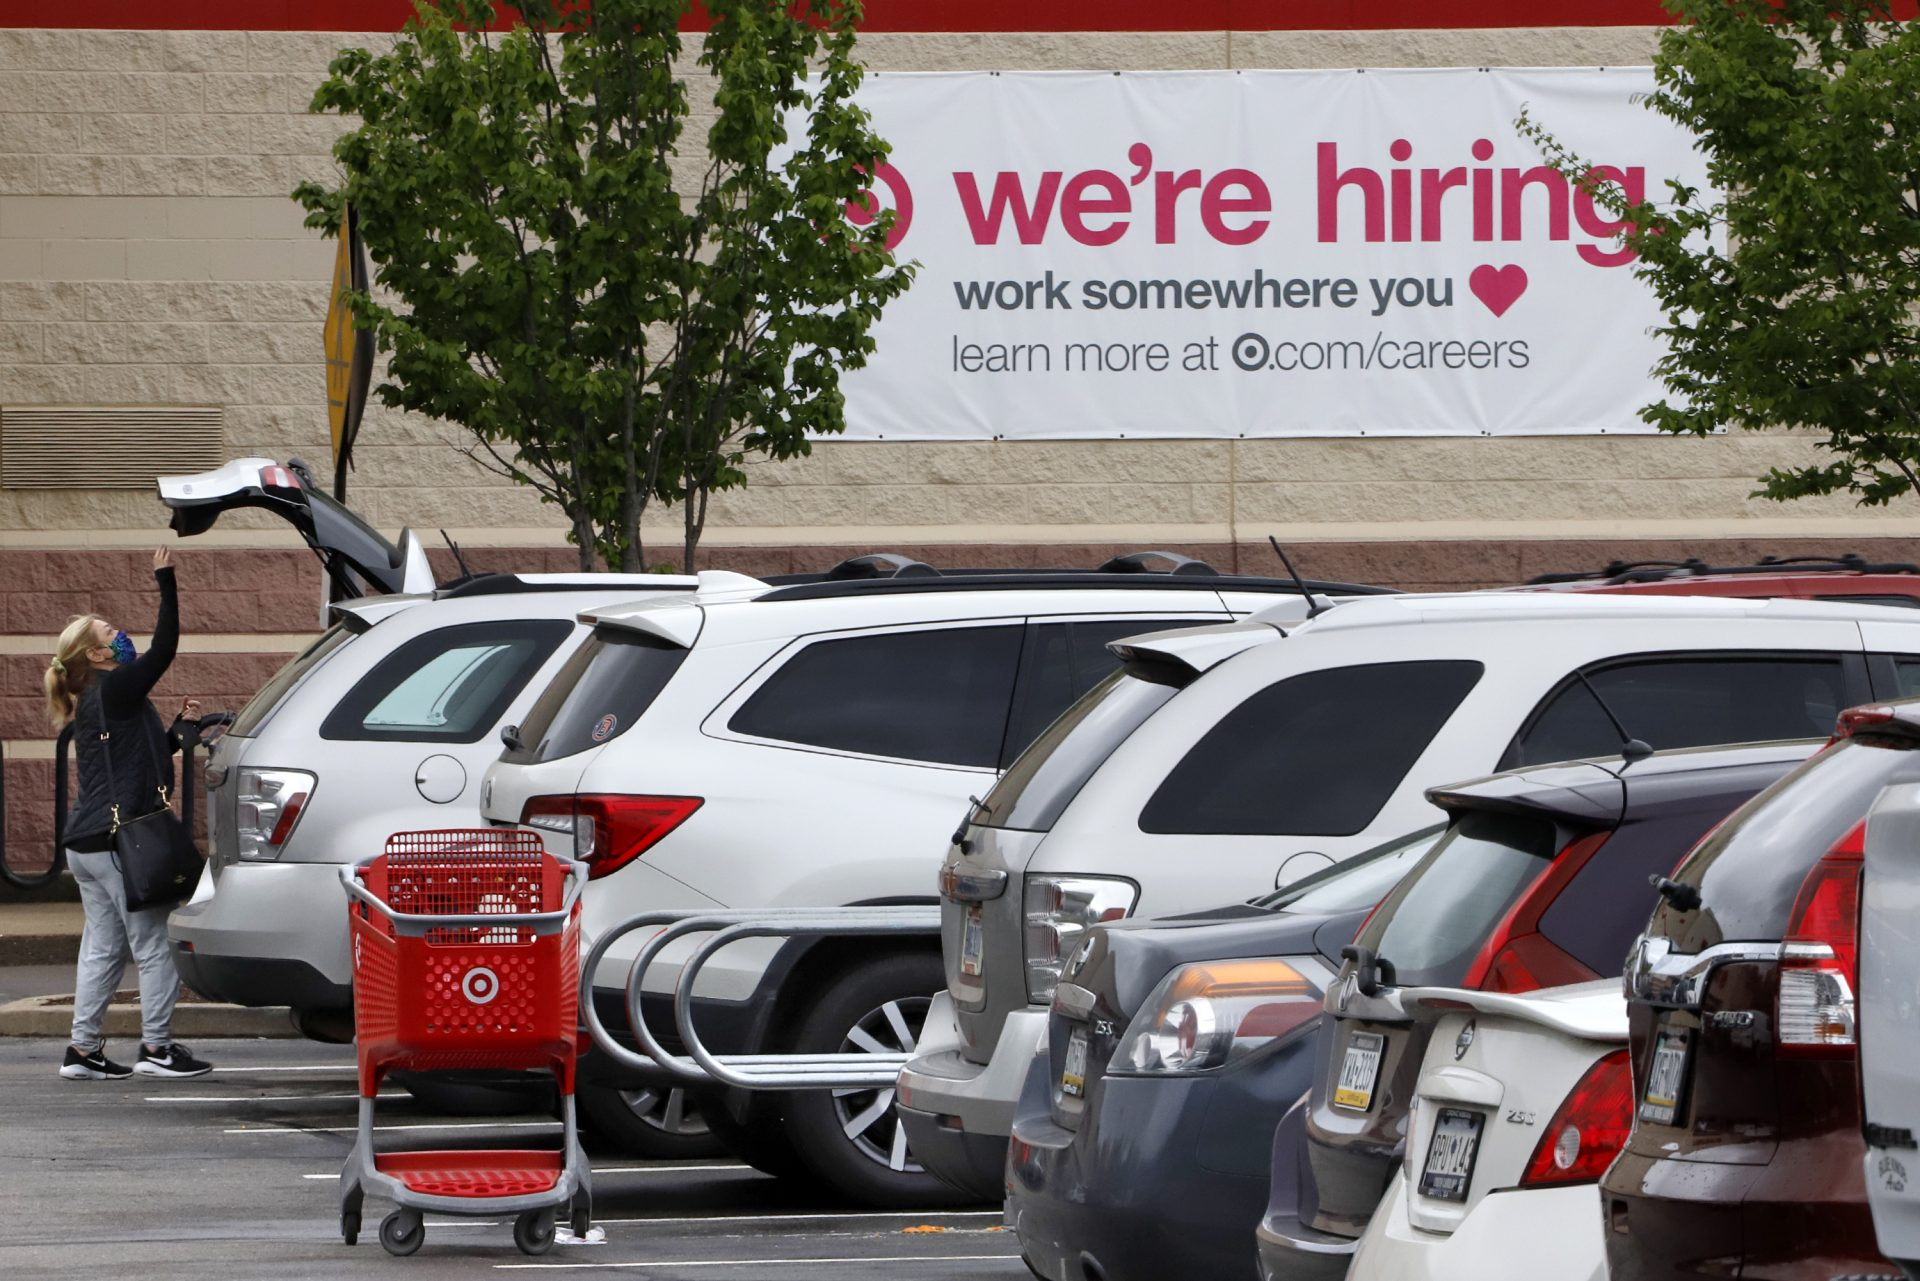 A shopper loads her car after shopping at a Target store in Robinson Township, Pa., Wednesday, May 6, 2020.